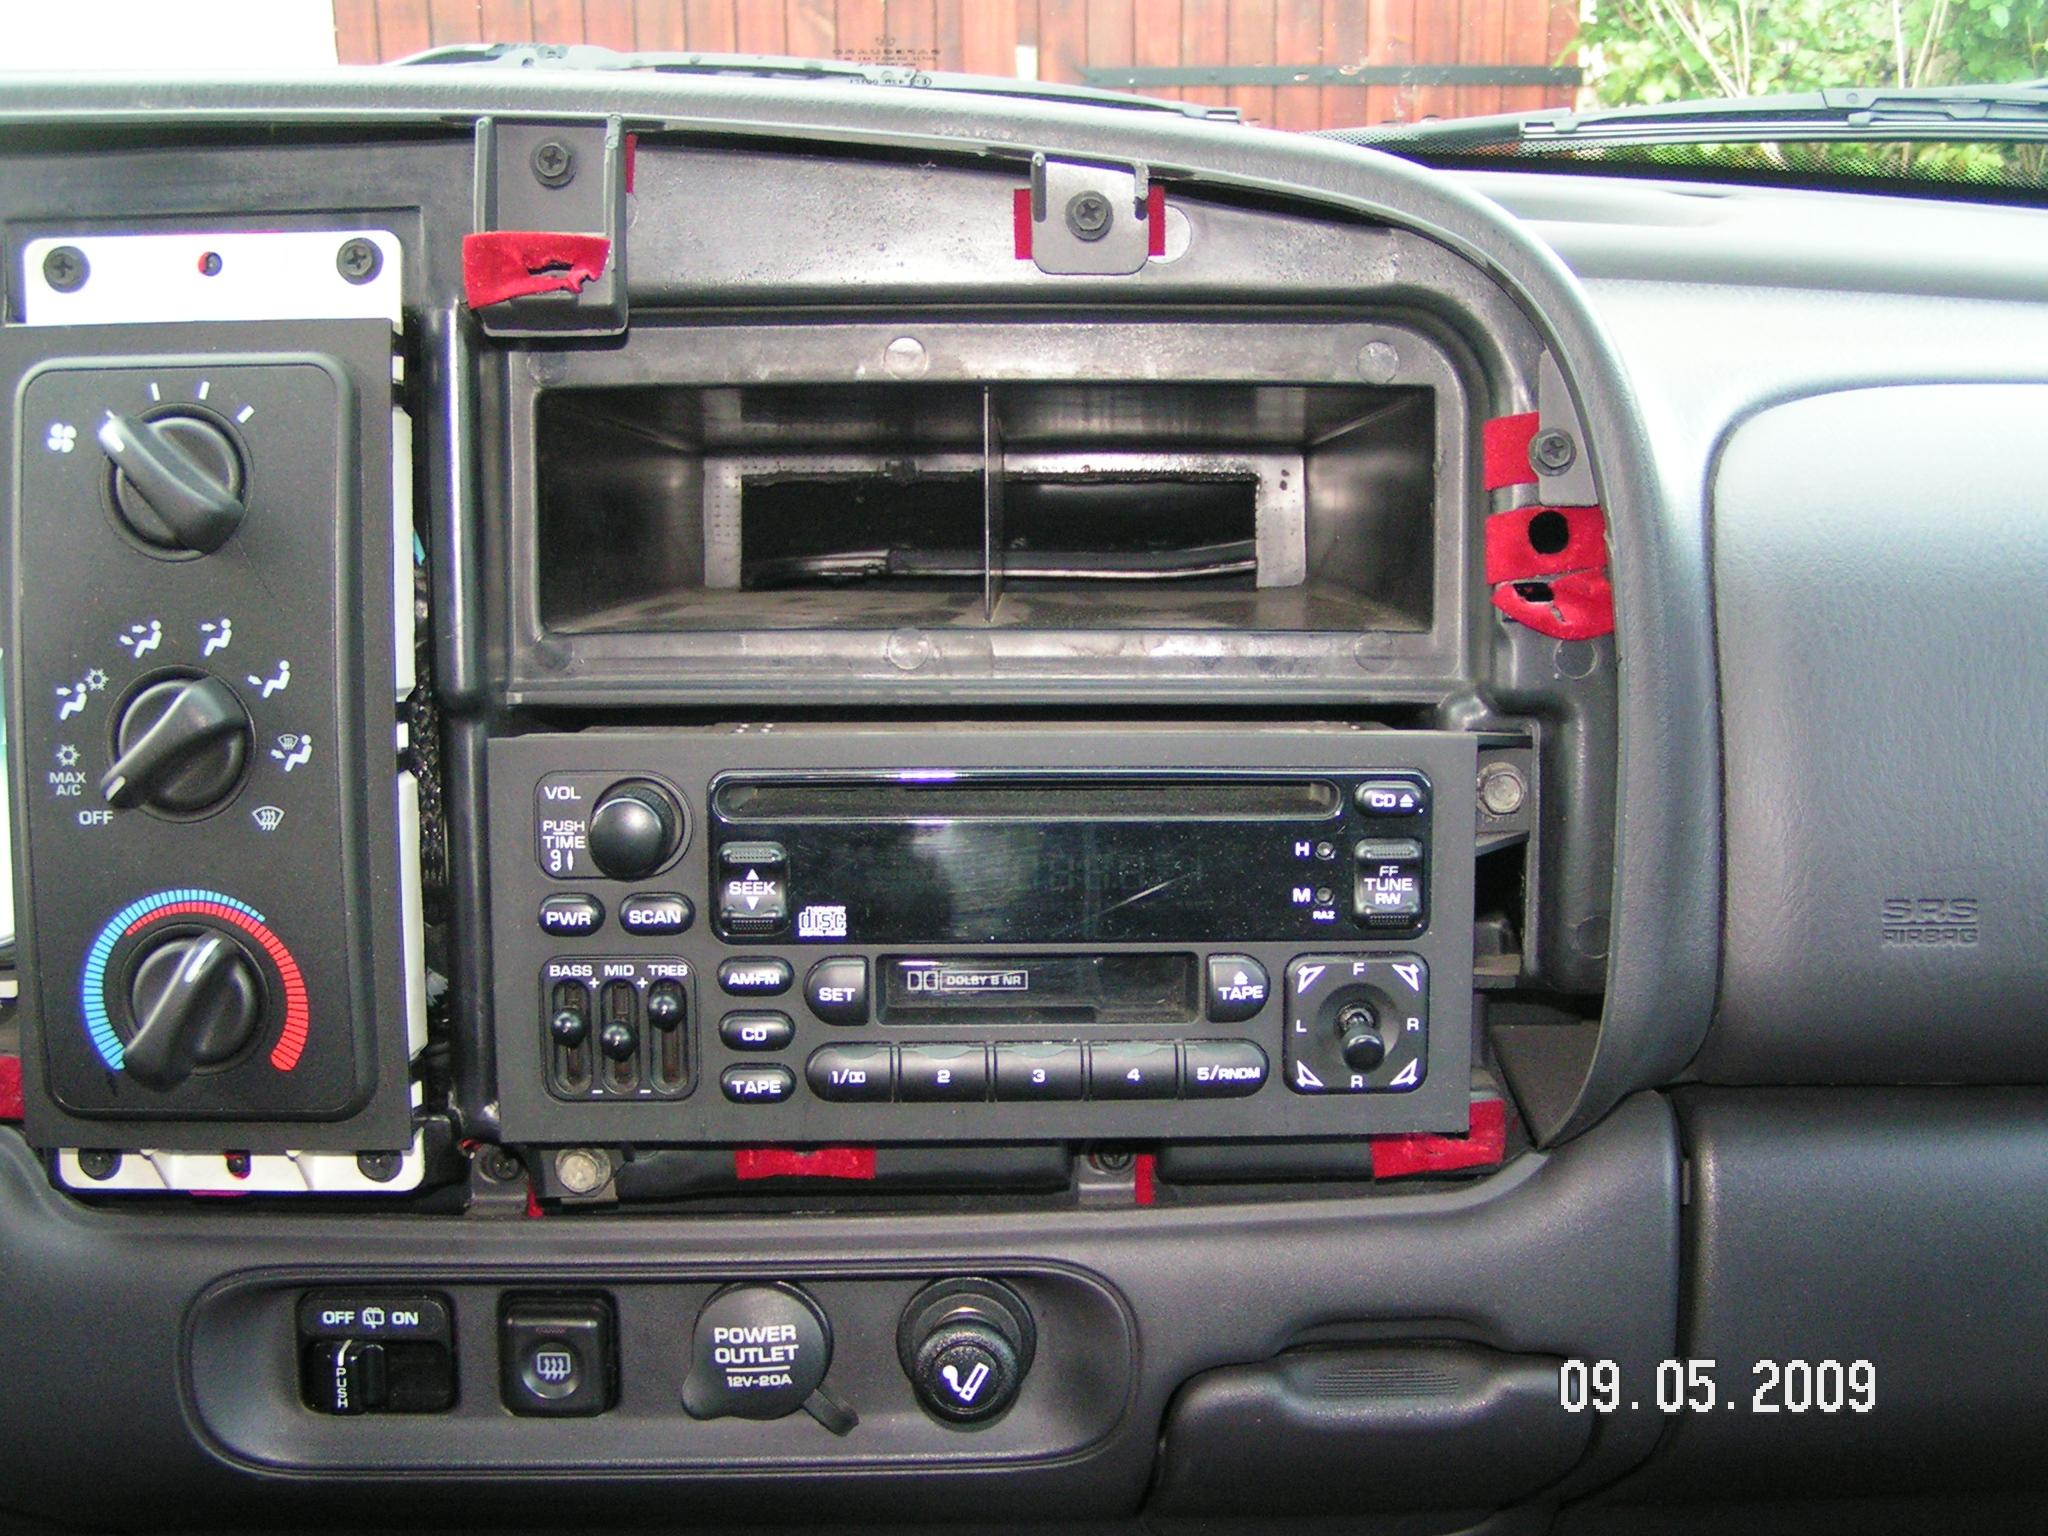 1999 Dodge Durango Radio Wiring Diagram Library Dakota